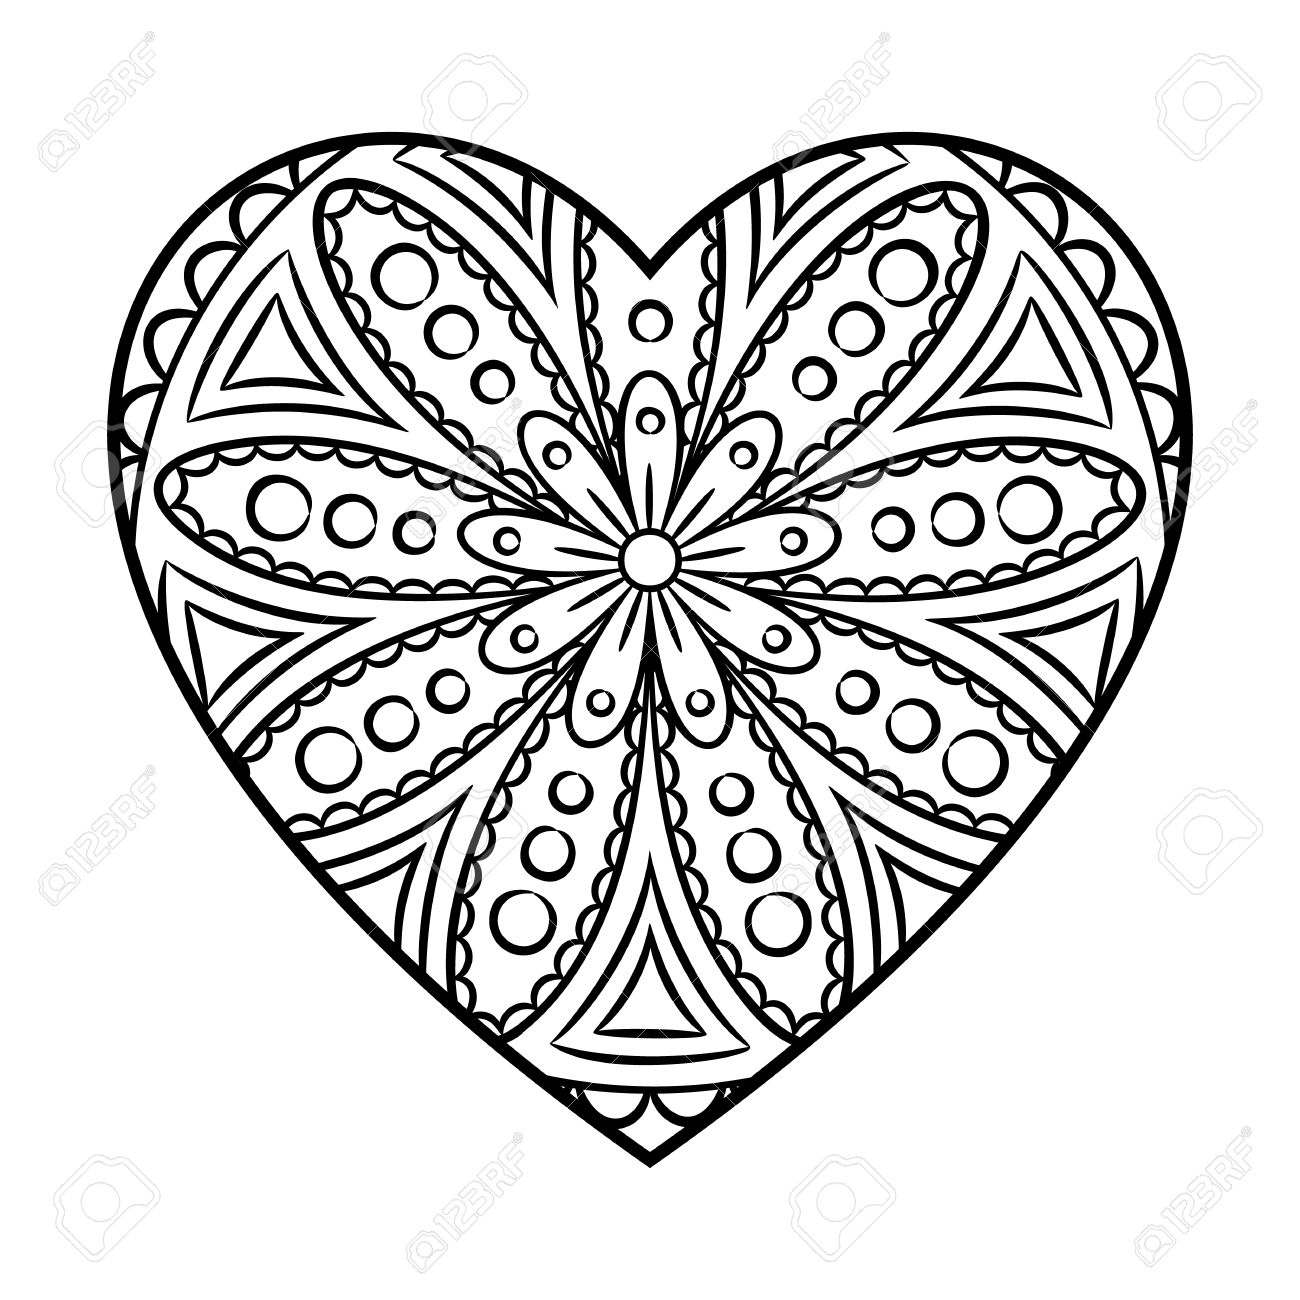 Click The Heart Mandala Coloring Pages To View Printable Version